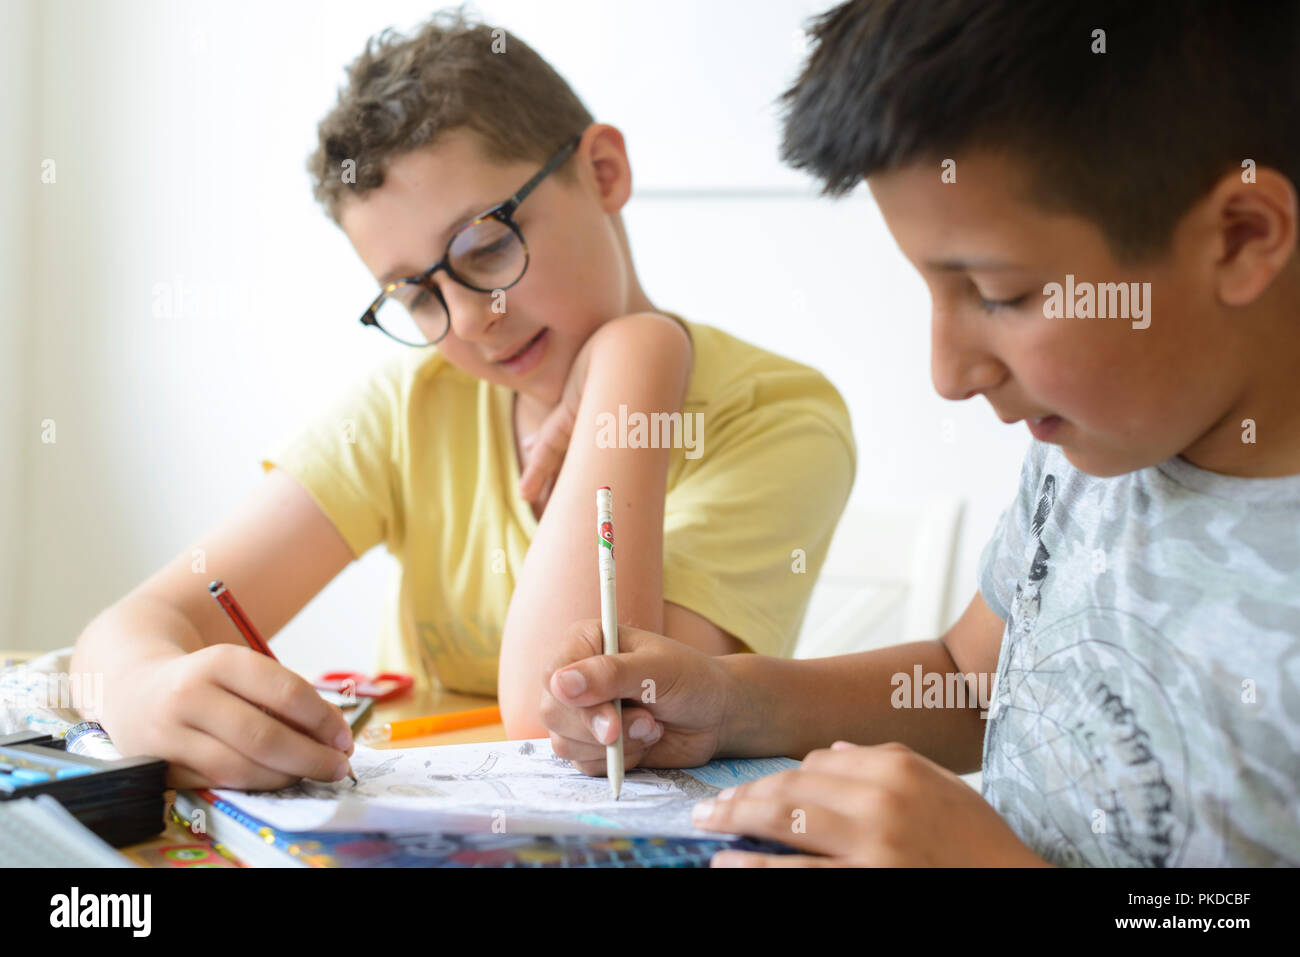 UK- Boy helps his schoolmate with maths homework - Stock Image